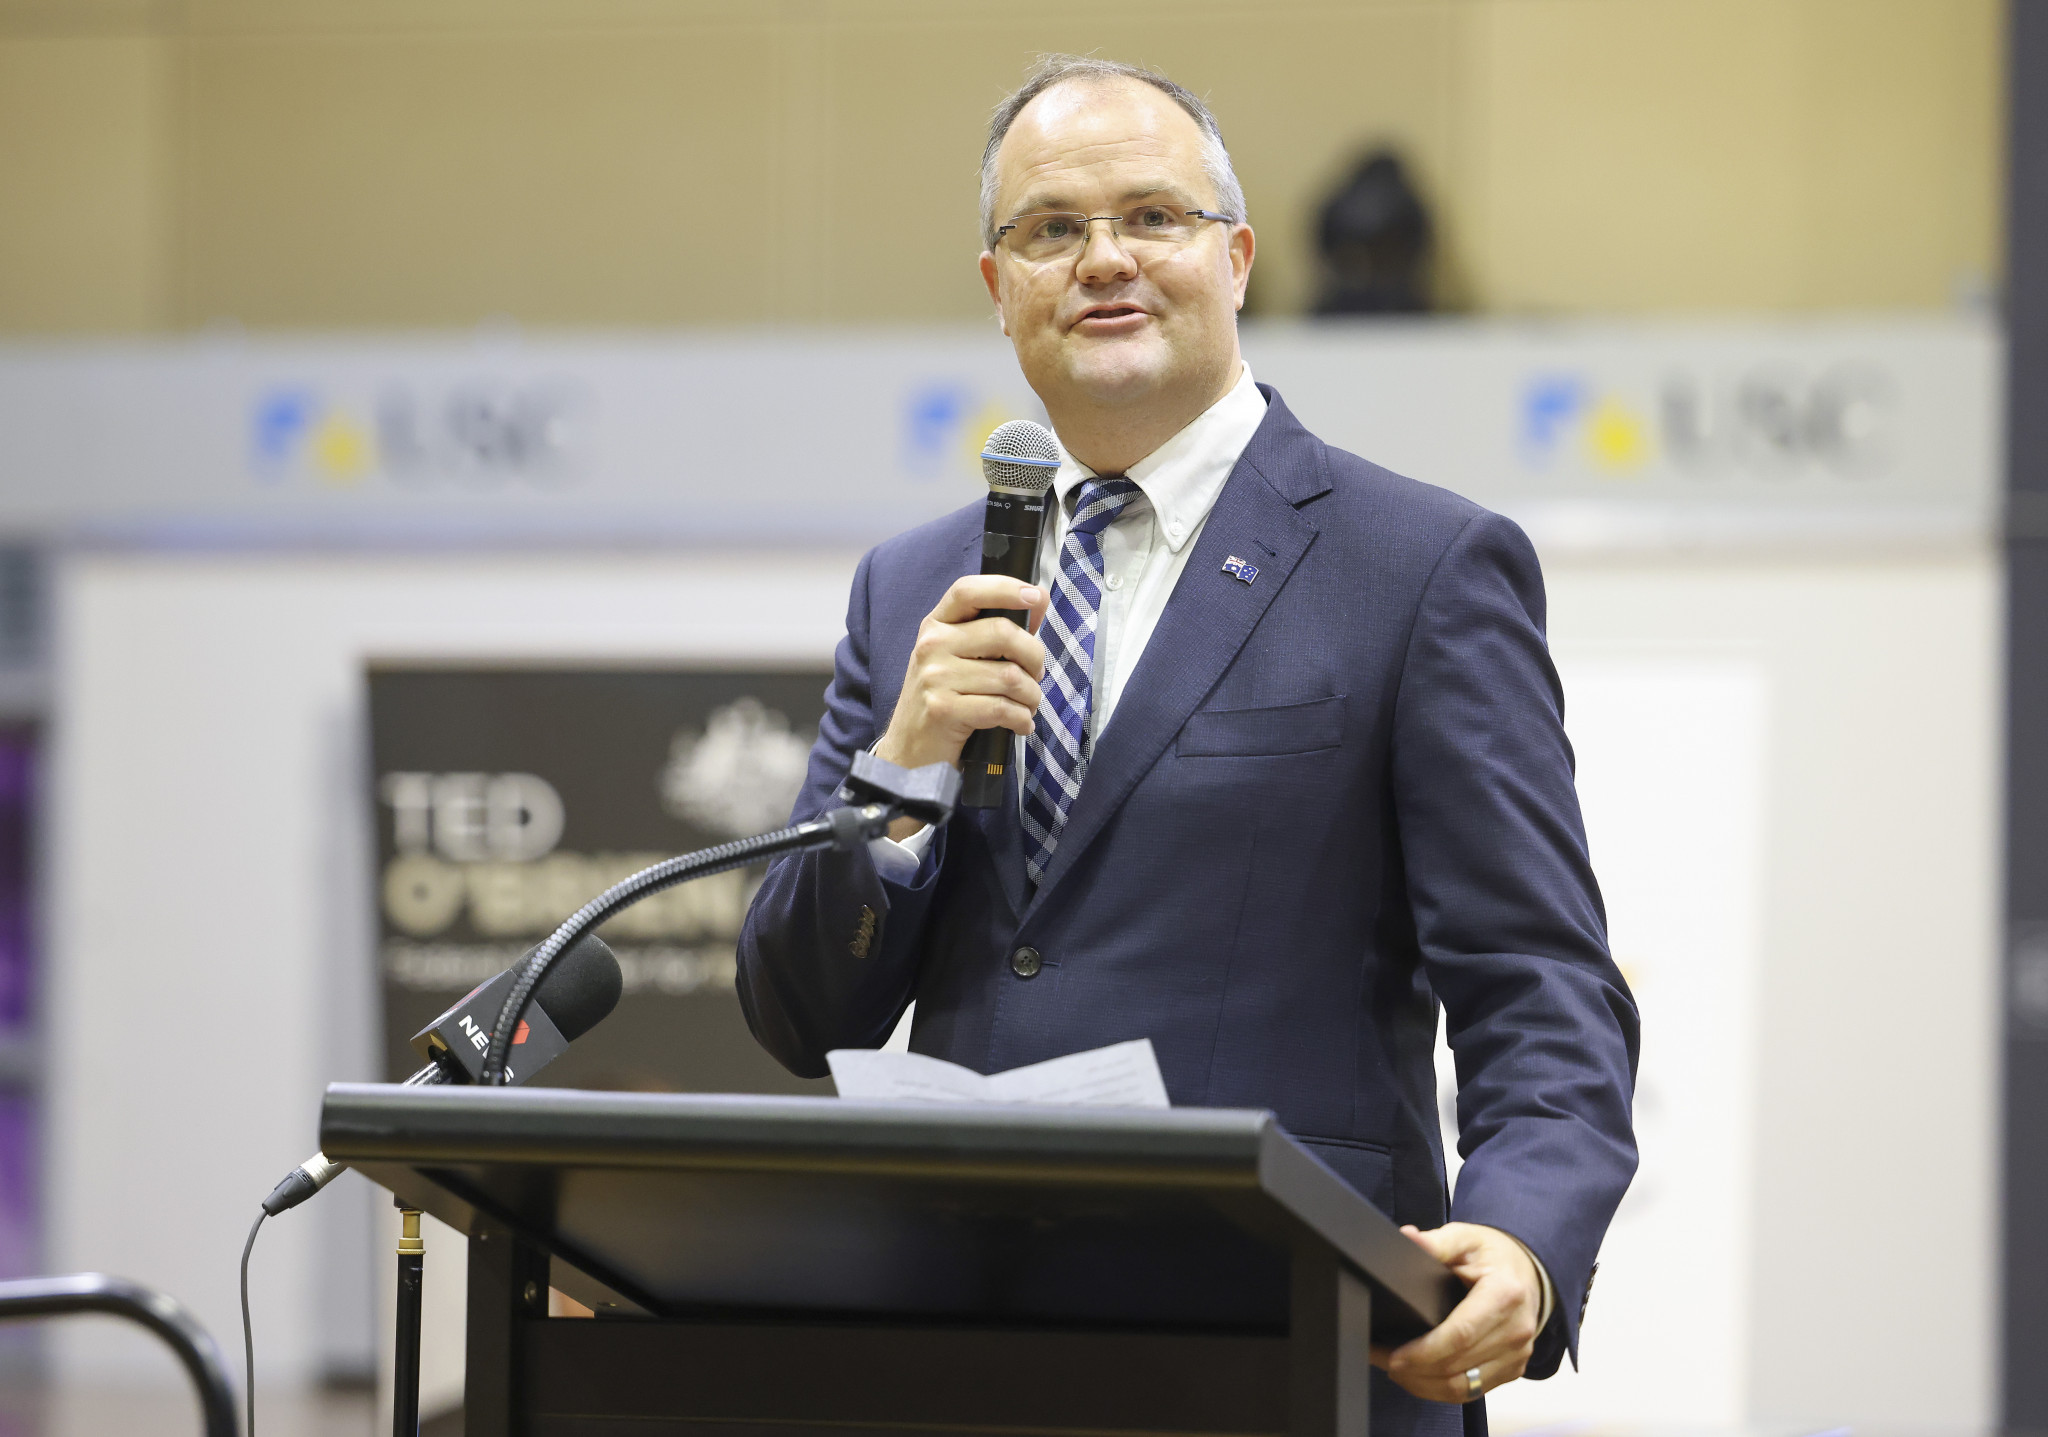 Australian Prime Minister's special envoy for Brisbane 2032 claims funding could be withdrawn in row with Queensland over Organising Committee